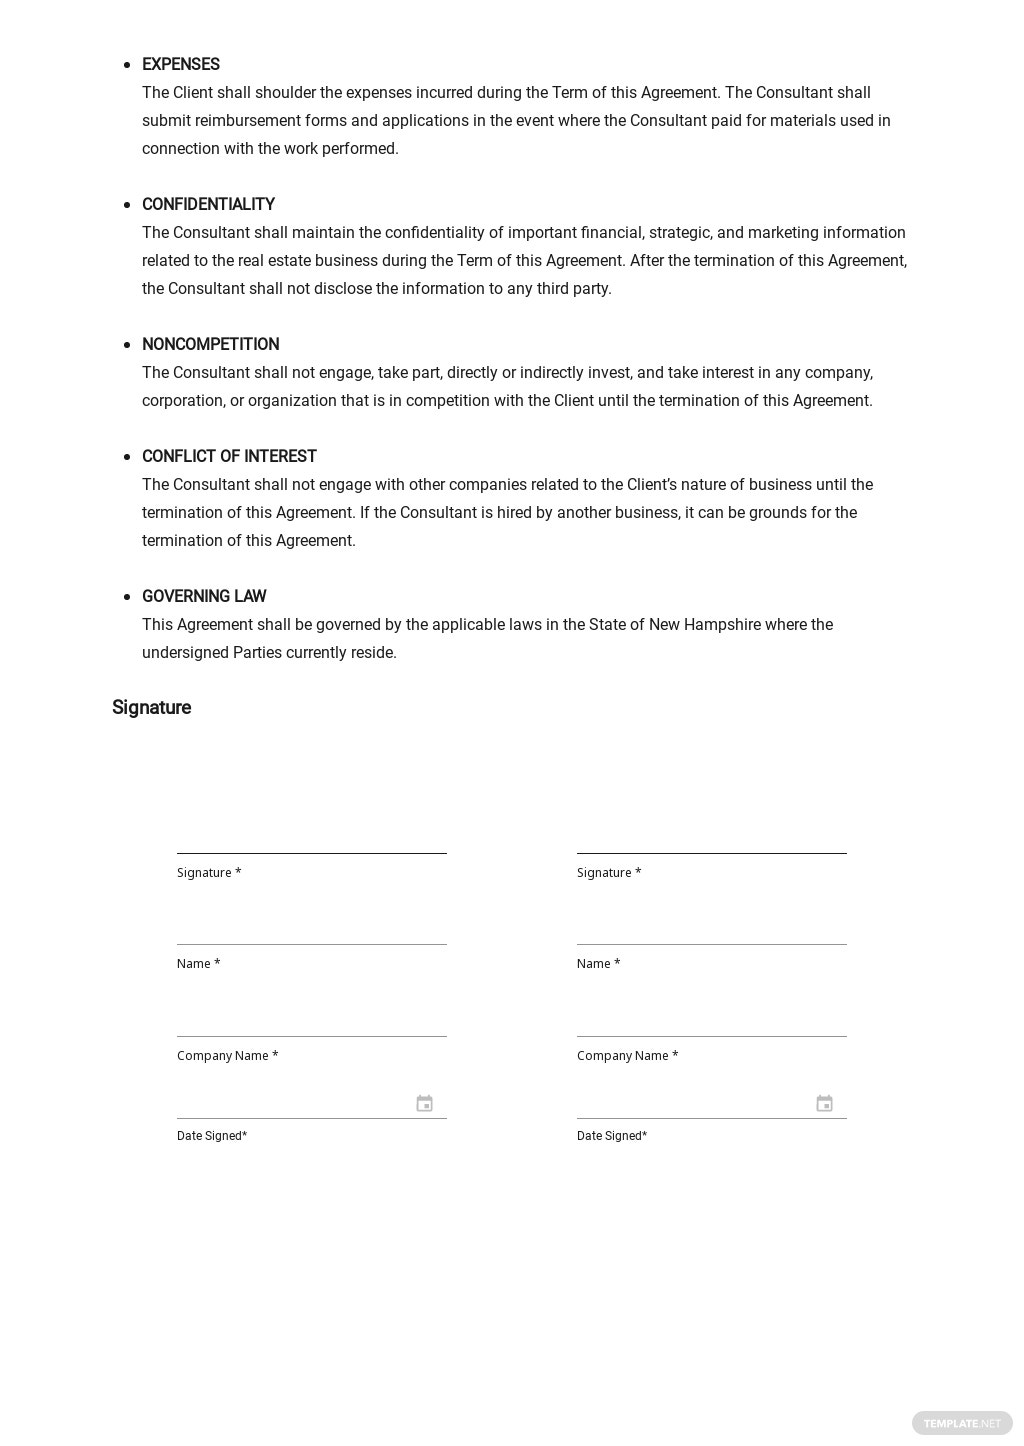 Real Estate Consulting Agreement Template 2.jpe